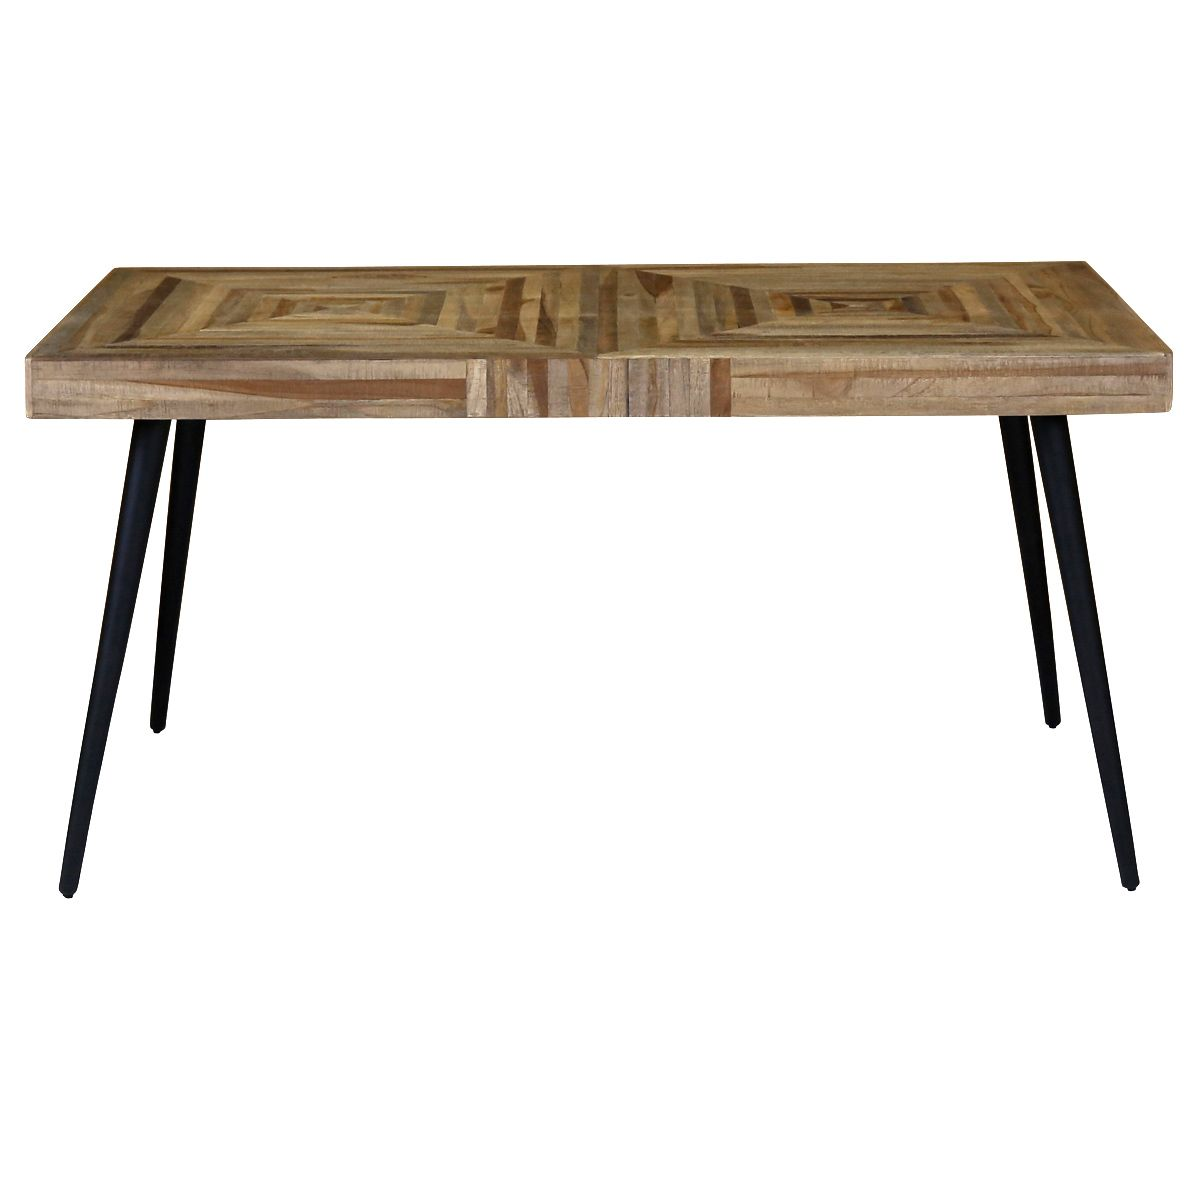 table rectangulaire style industriel 150 x 80 cm en teck et m tal woody zago store. Black Bedroom Furniture Sets. Home Design Ideas